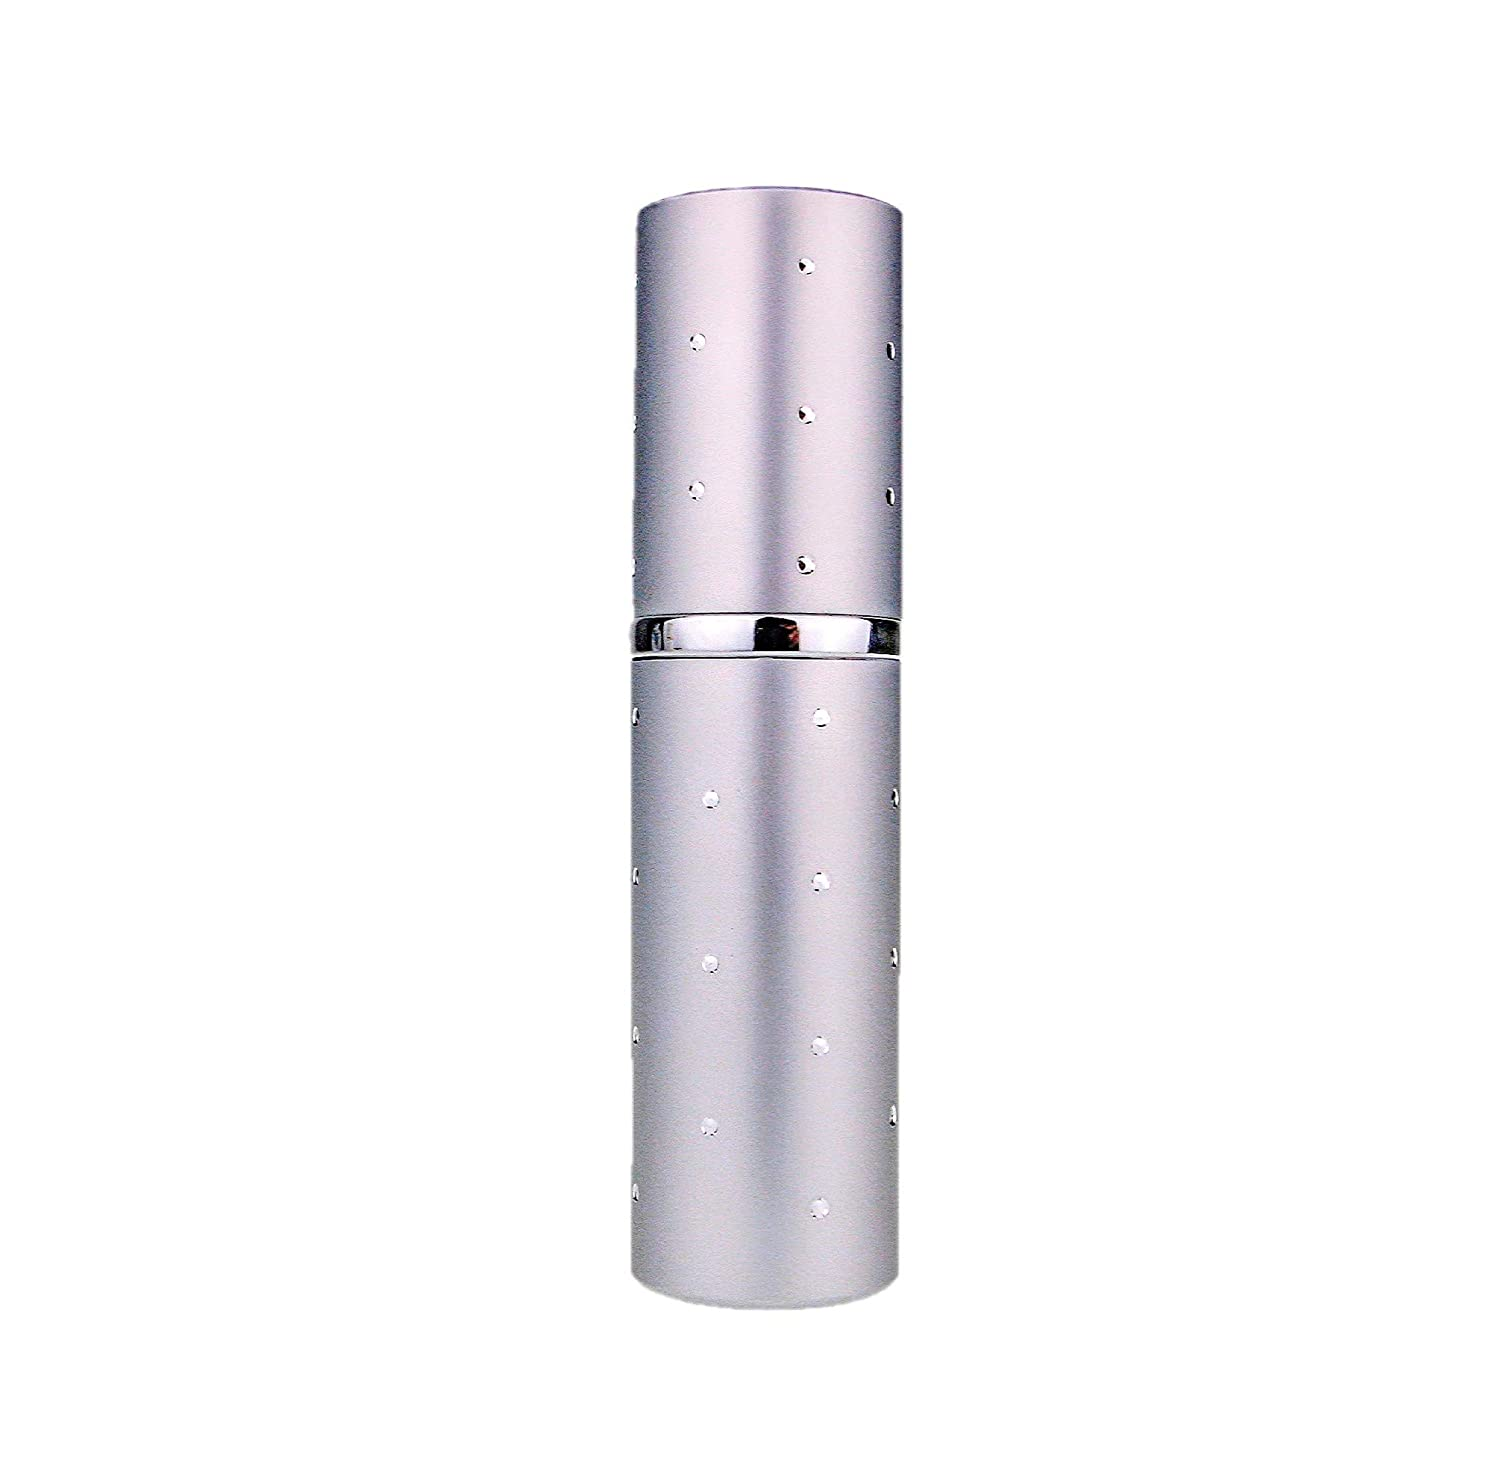 Silver Dot Perfume Travel Atomizer. Capacity 10ml. Refillable, Includes Filling Funnel the essential atomizer company